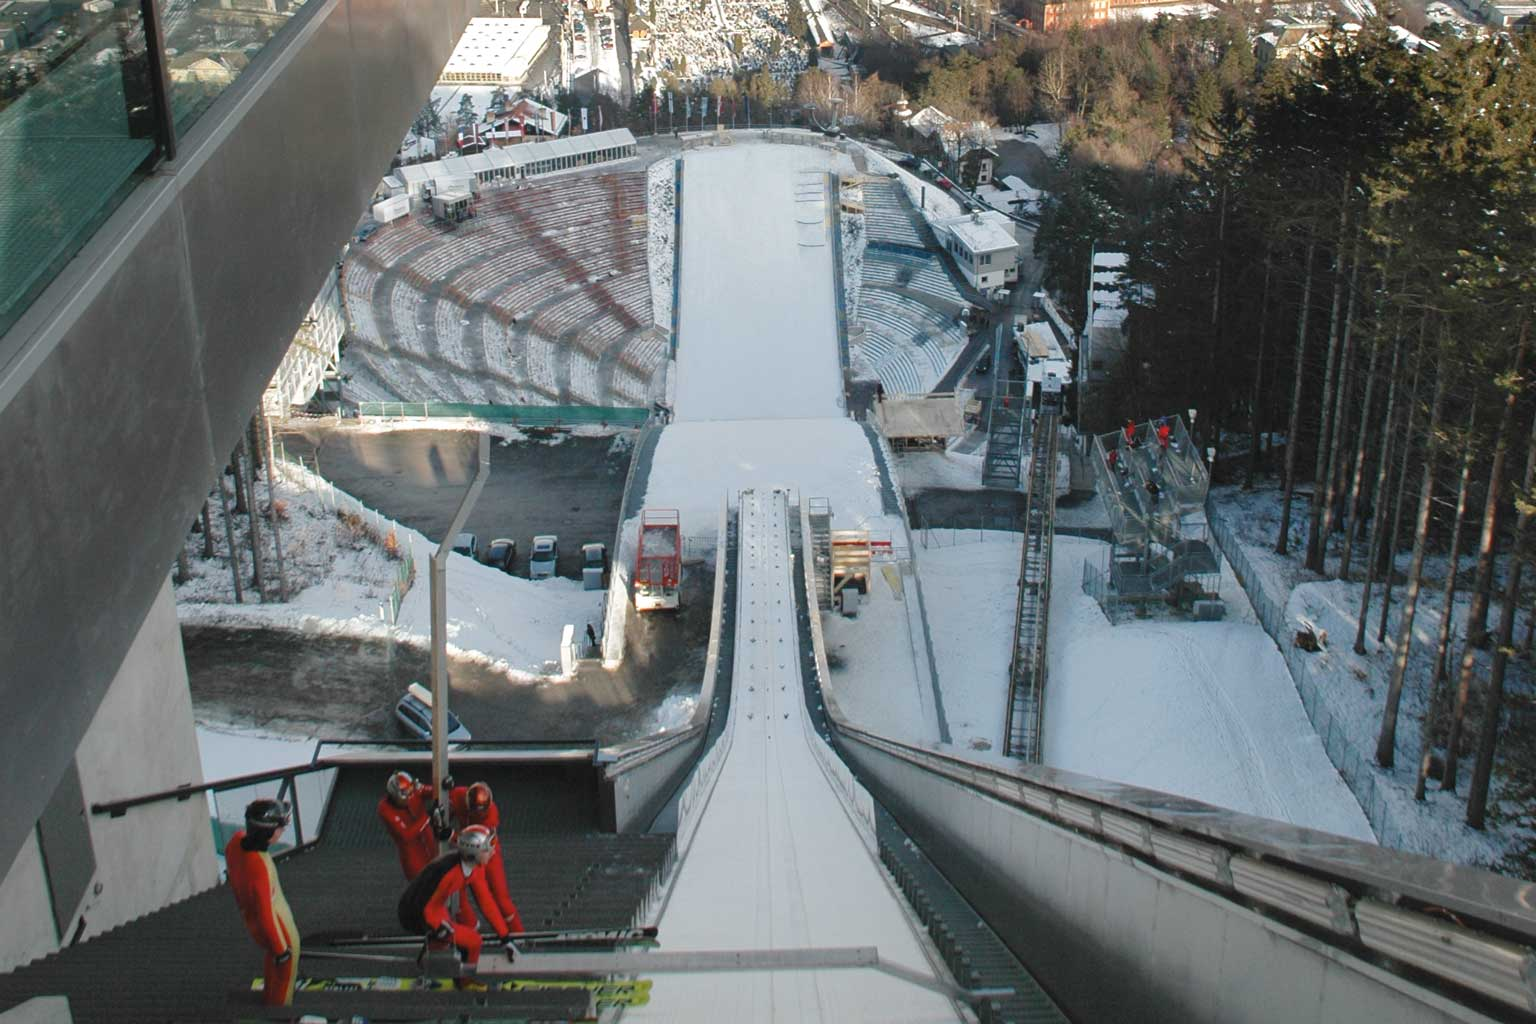 Team Event Four Hills Tournament Buderus ski jump